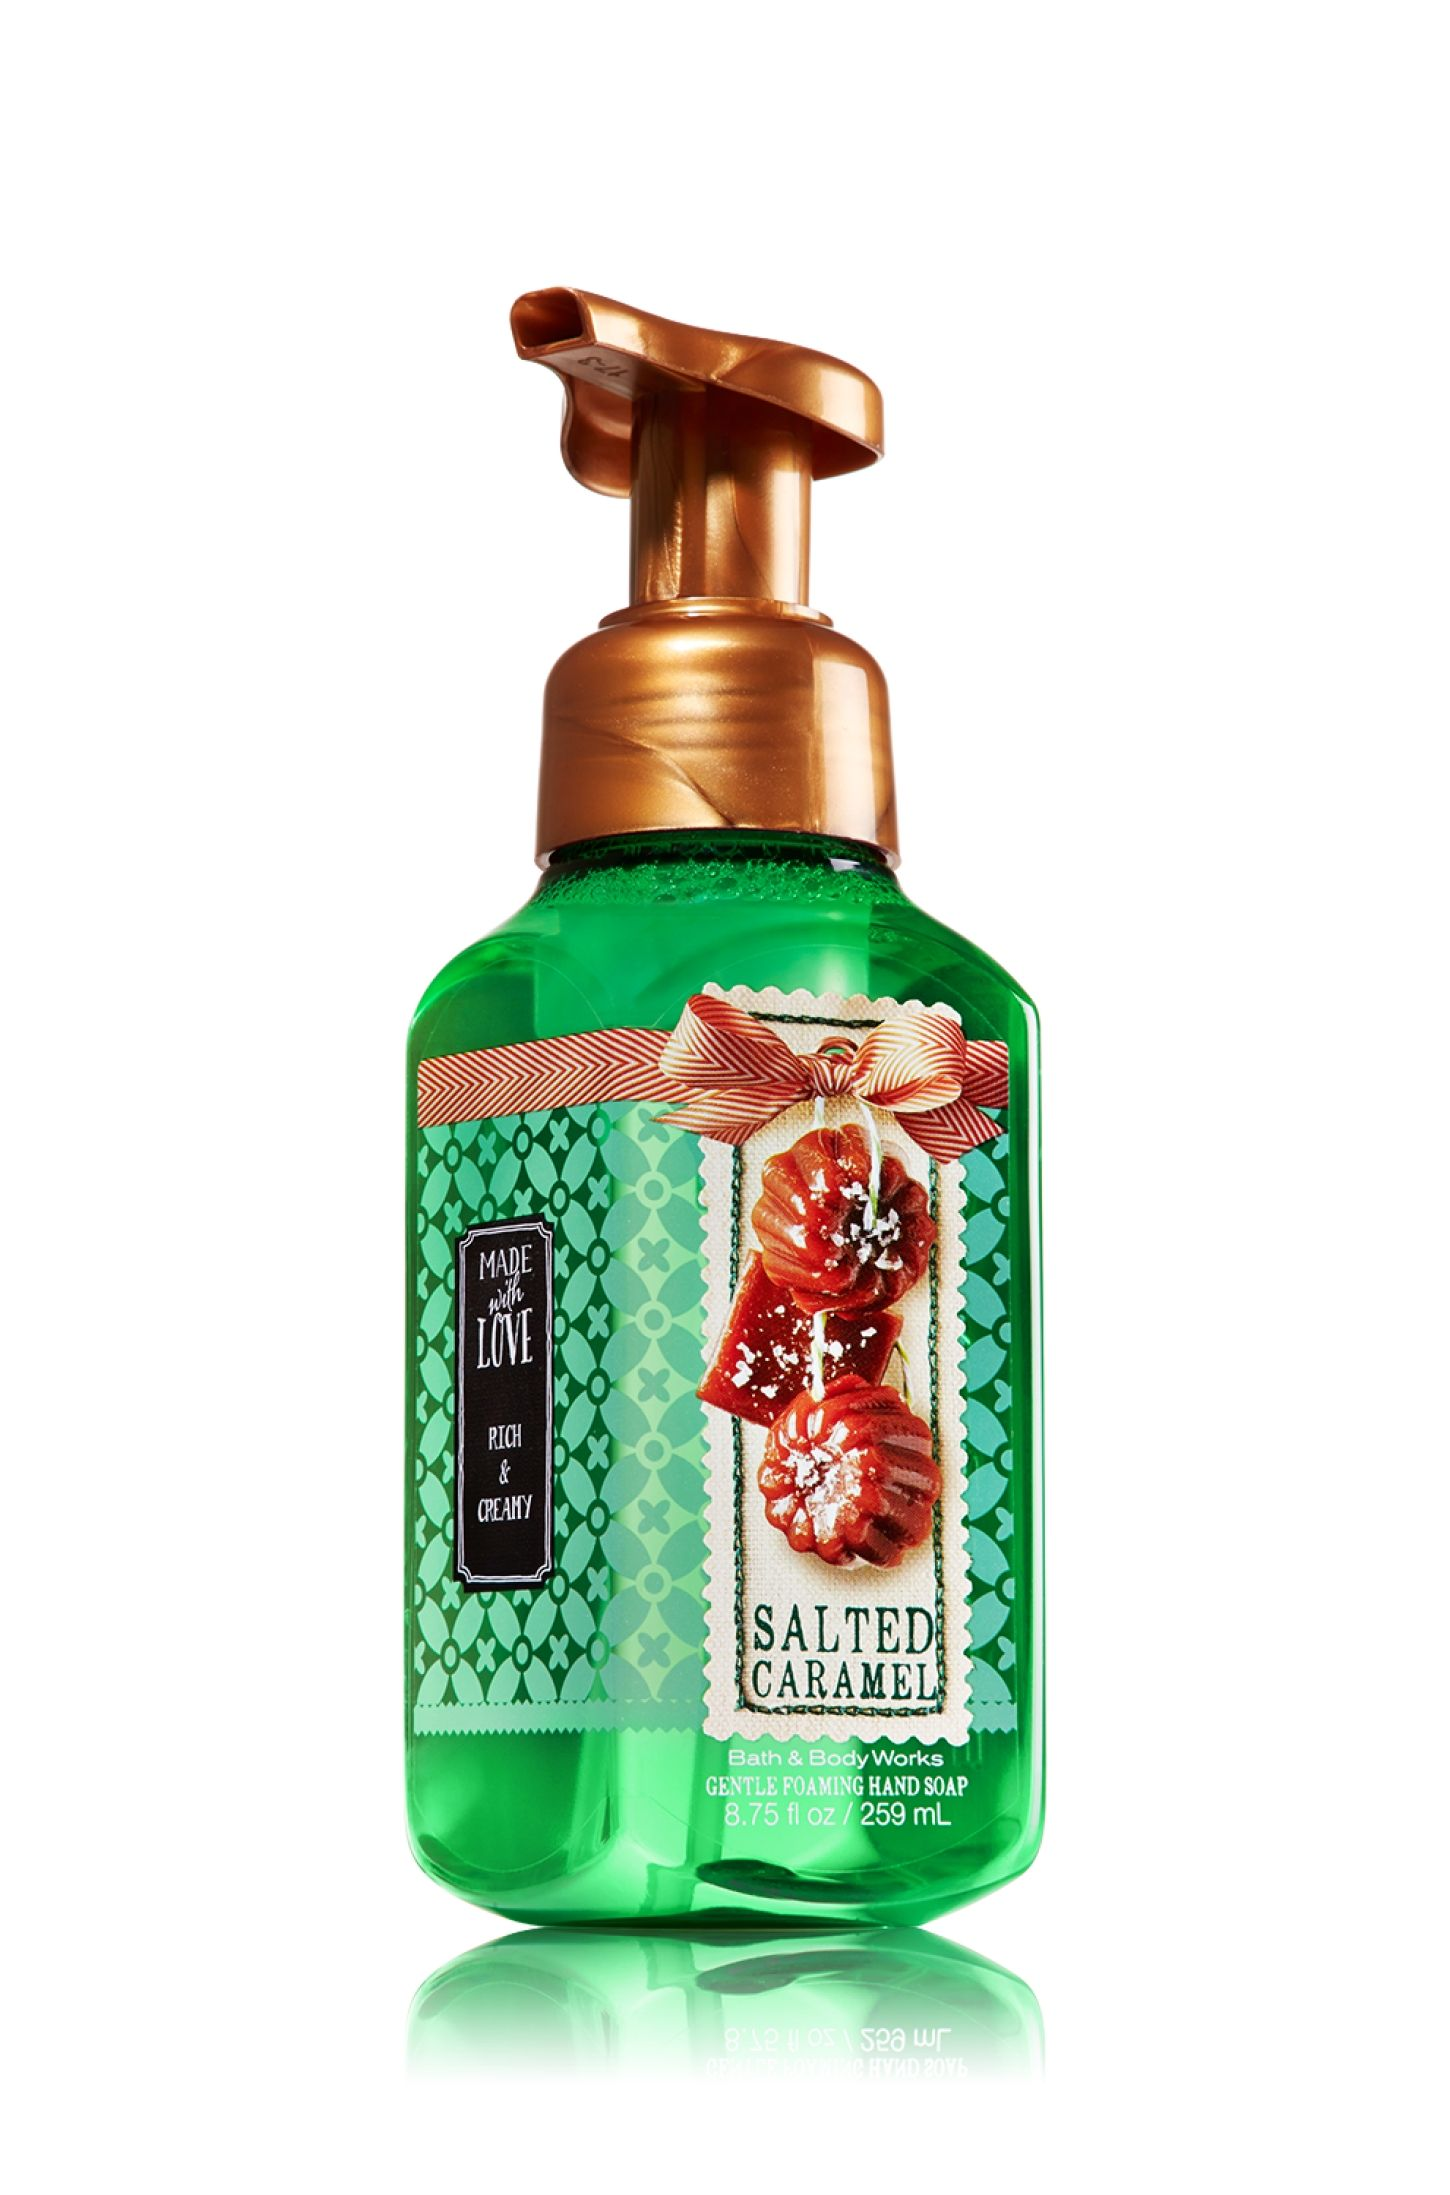 Salted Caramel Gentle Foaming Hand Soap - Soap/Sanitizer - Bath & Body Works | Bath and body works. Bath n body works. Bath and body